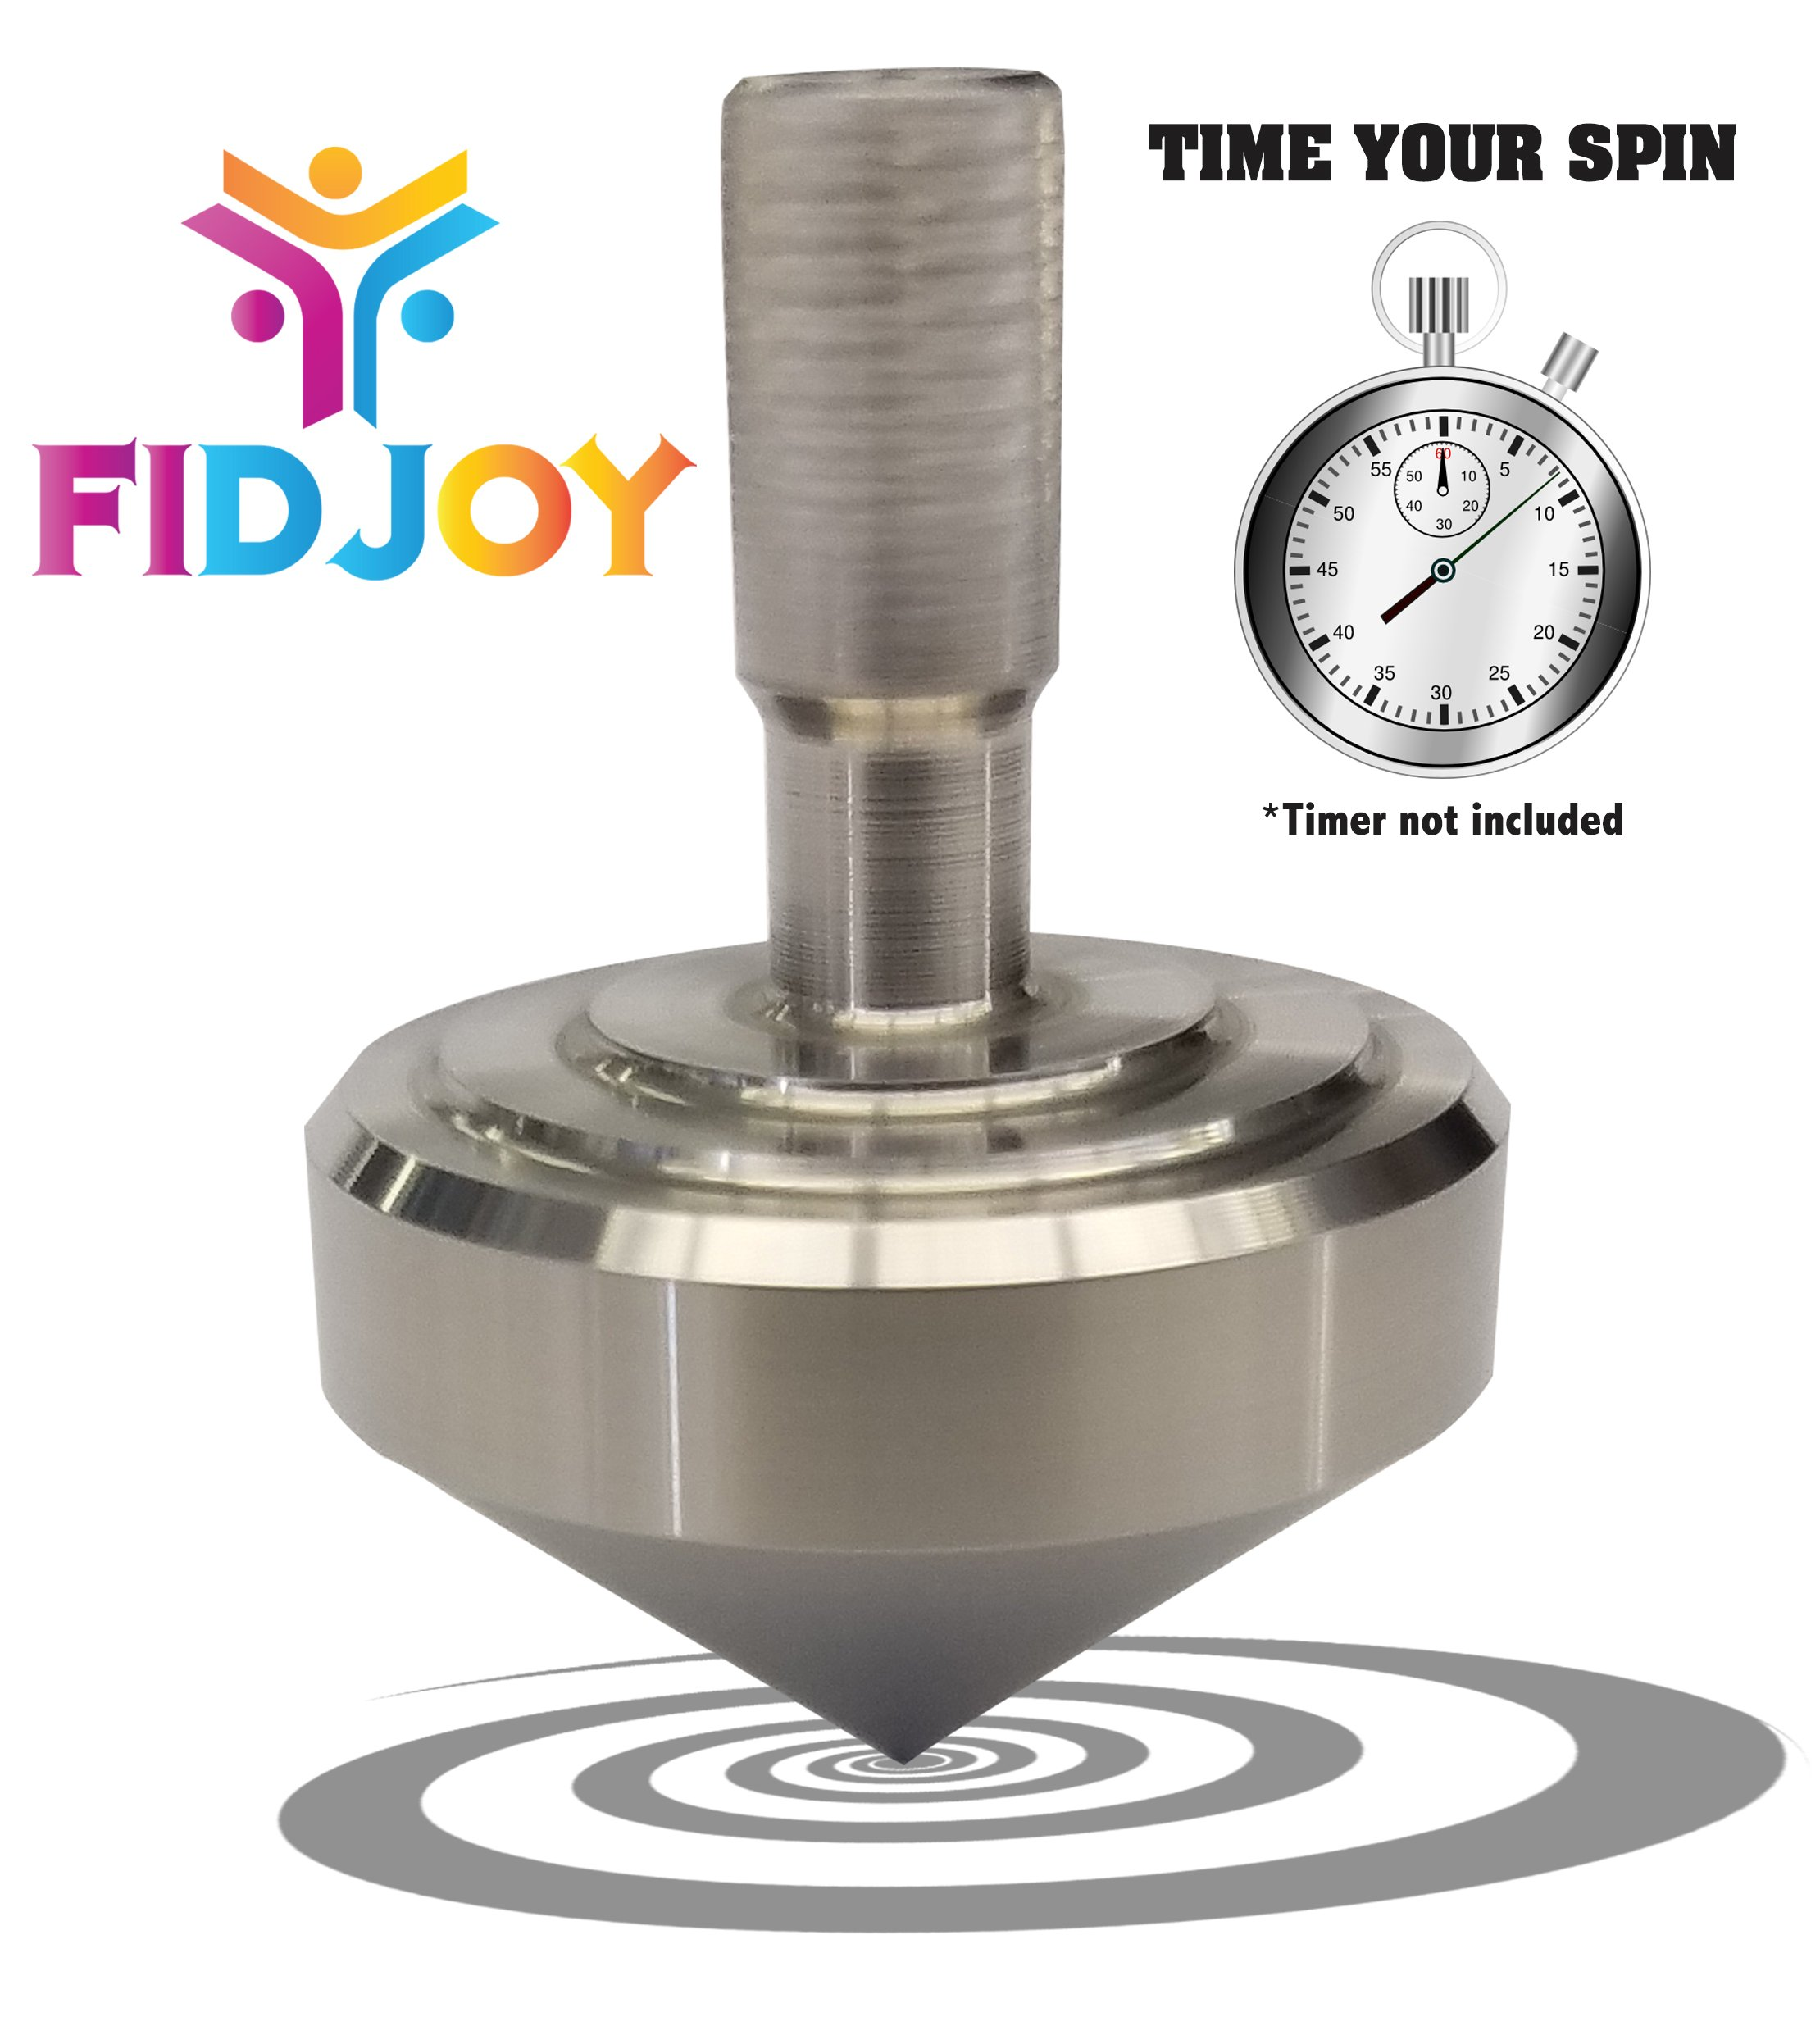 FidJoy Precision Stainless Steel Spinning Top , Get the Longest Spin with the Classic Fidget Spinner For the Desk, Pocket or Gift. 2.7 CM Height, 2 CM Width